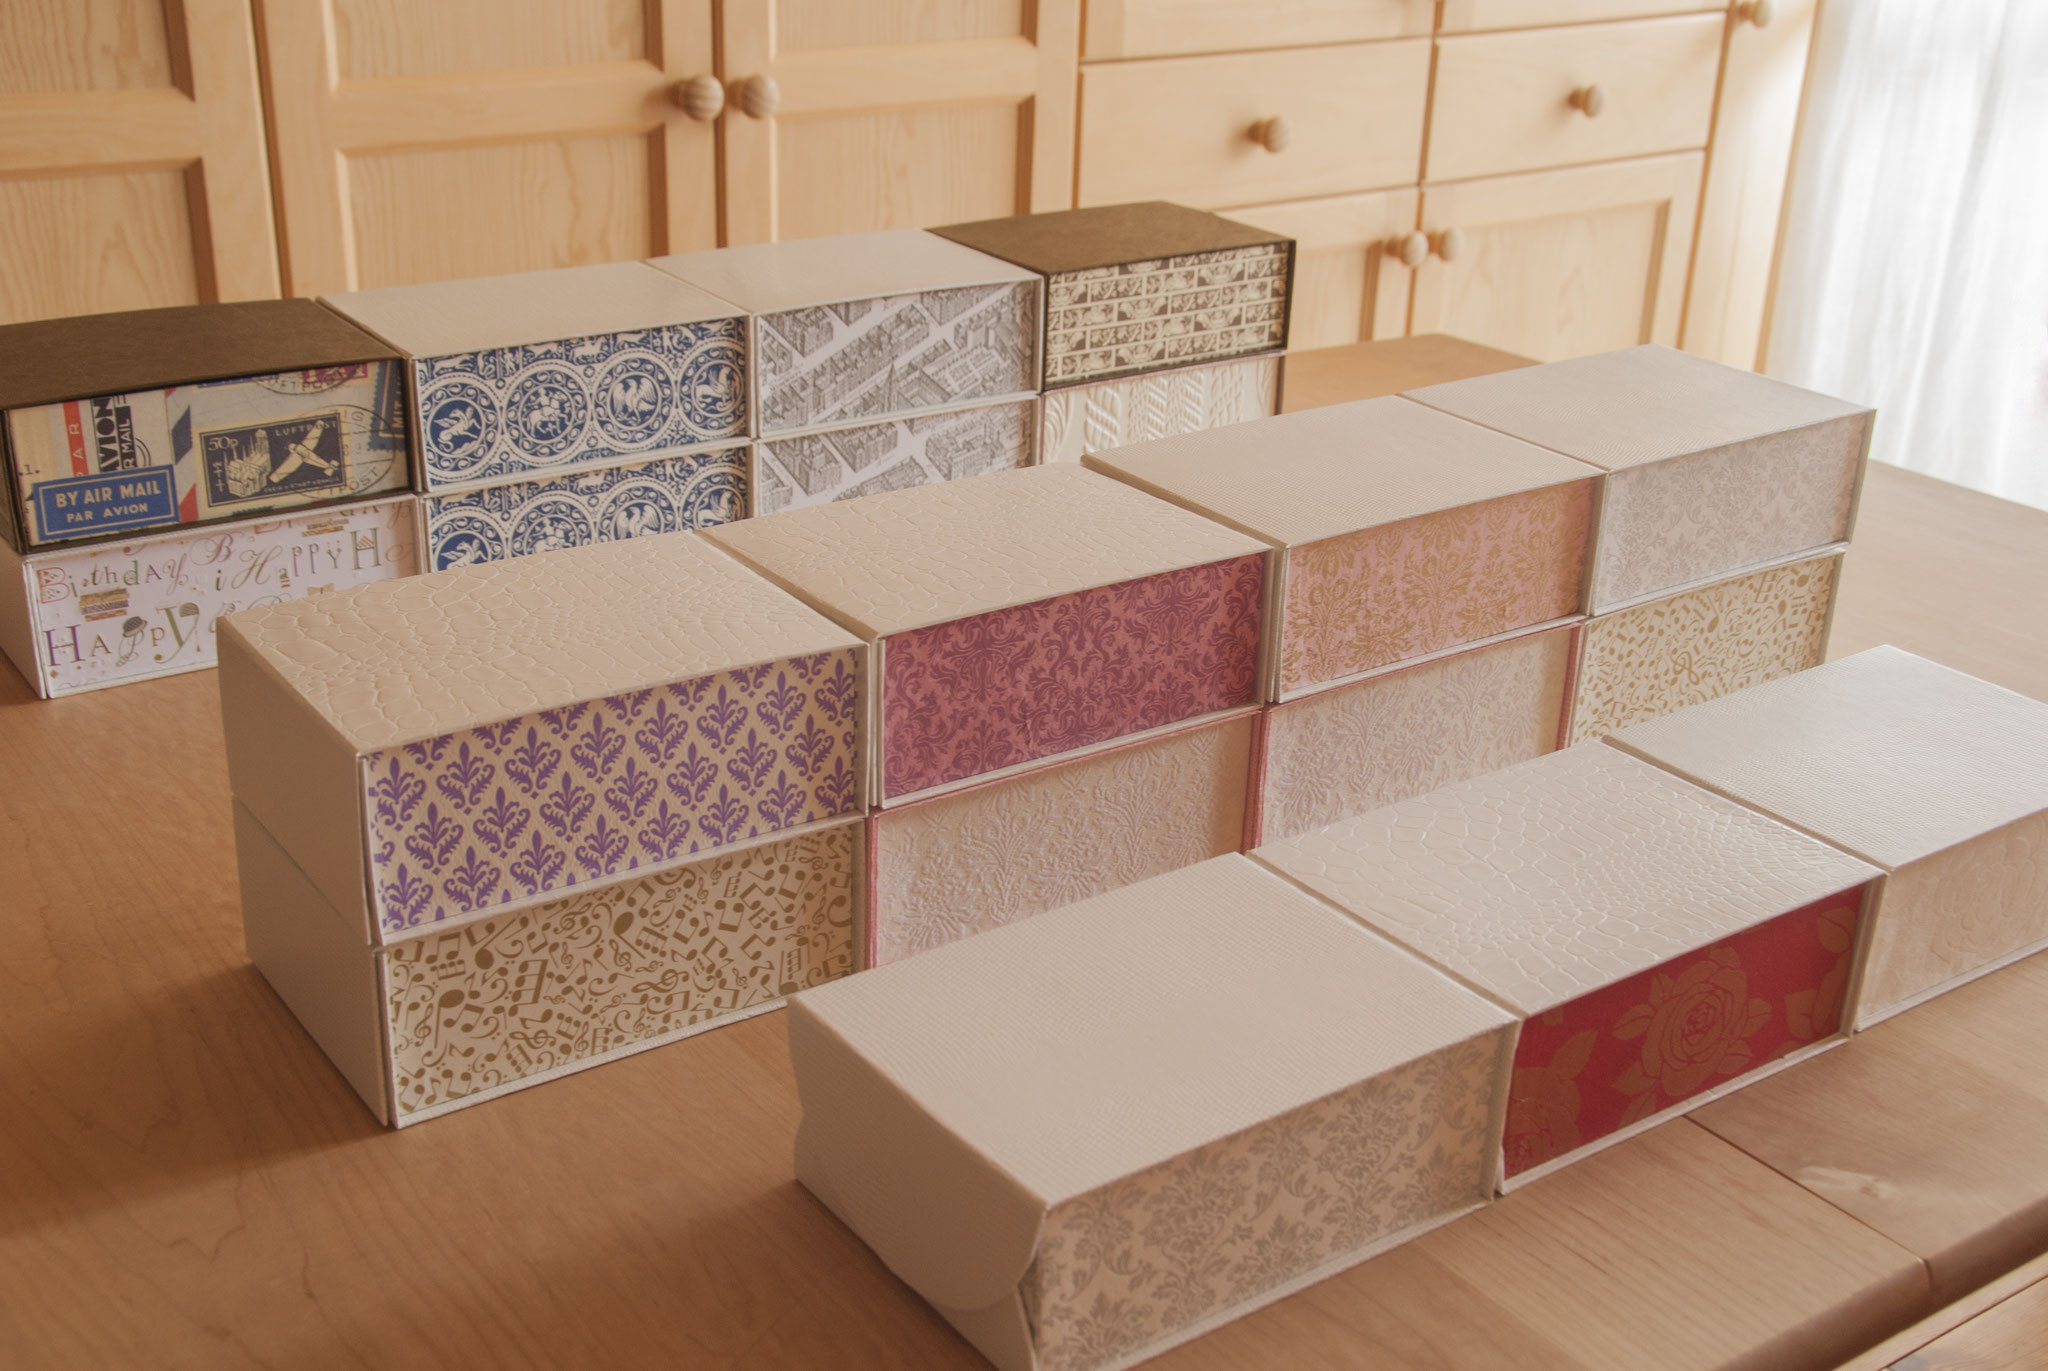 201804 boxes: Postcard(KG) Storage Boxes with magnets. 19 boxes all hand made, 3 of them are special boxes with curved edges. Fleur*Fleur*